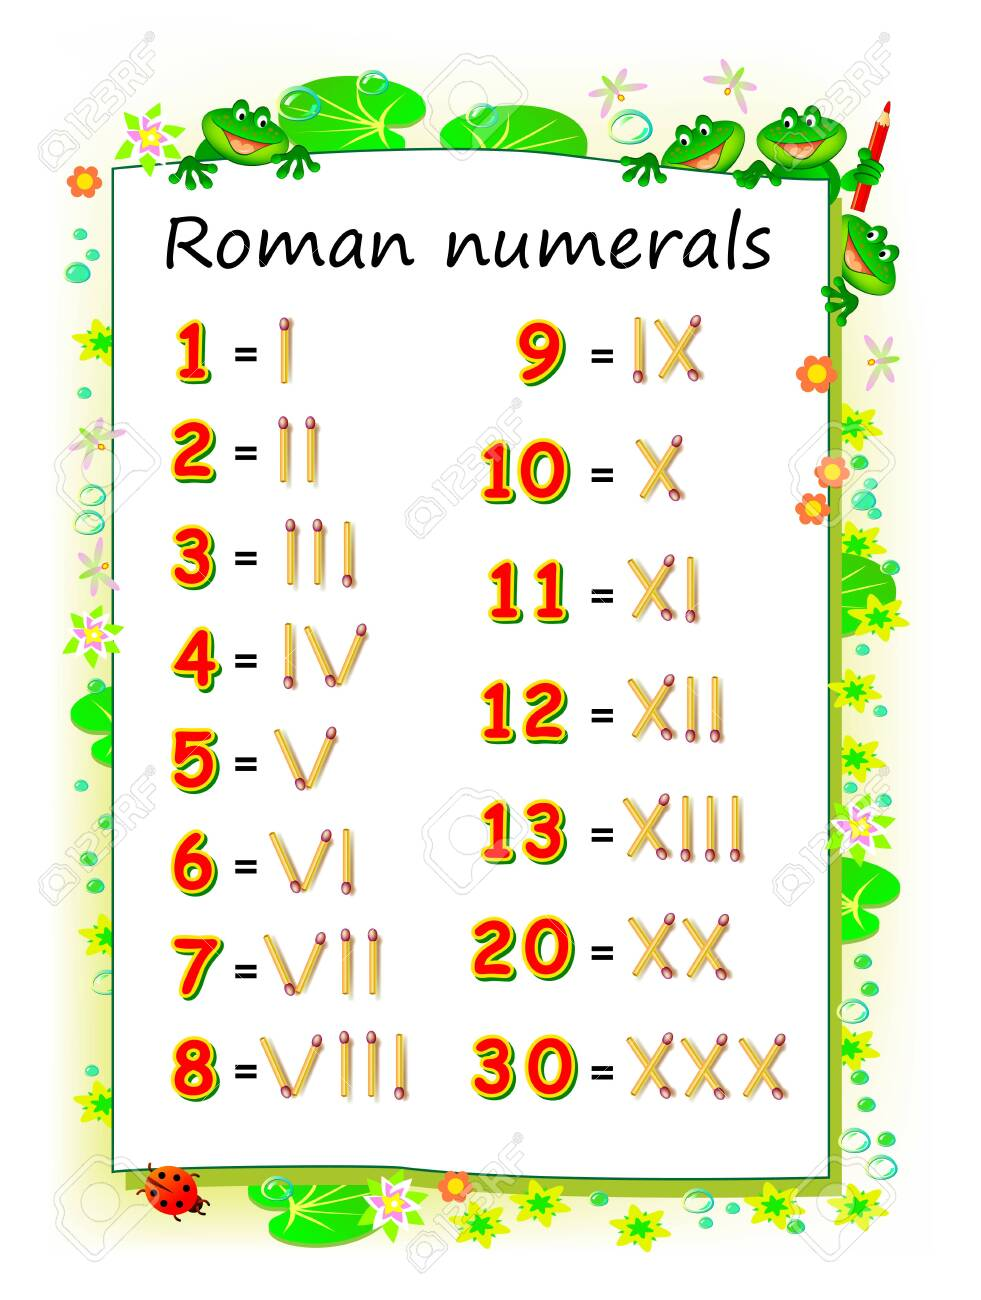 photo relating to Roman Numerals Printable named Instructive web site for young children towards investigation Roman numerals. Printable..